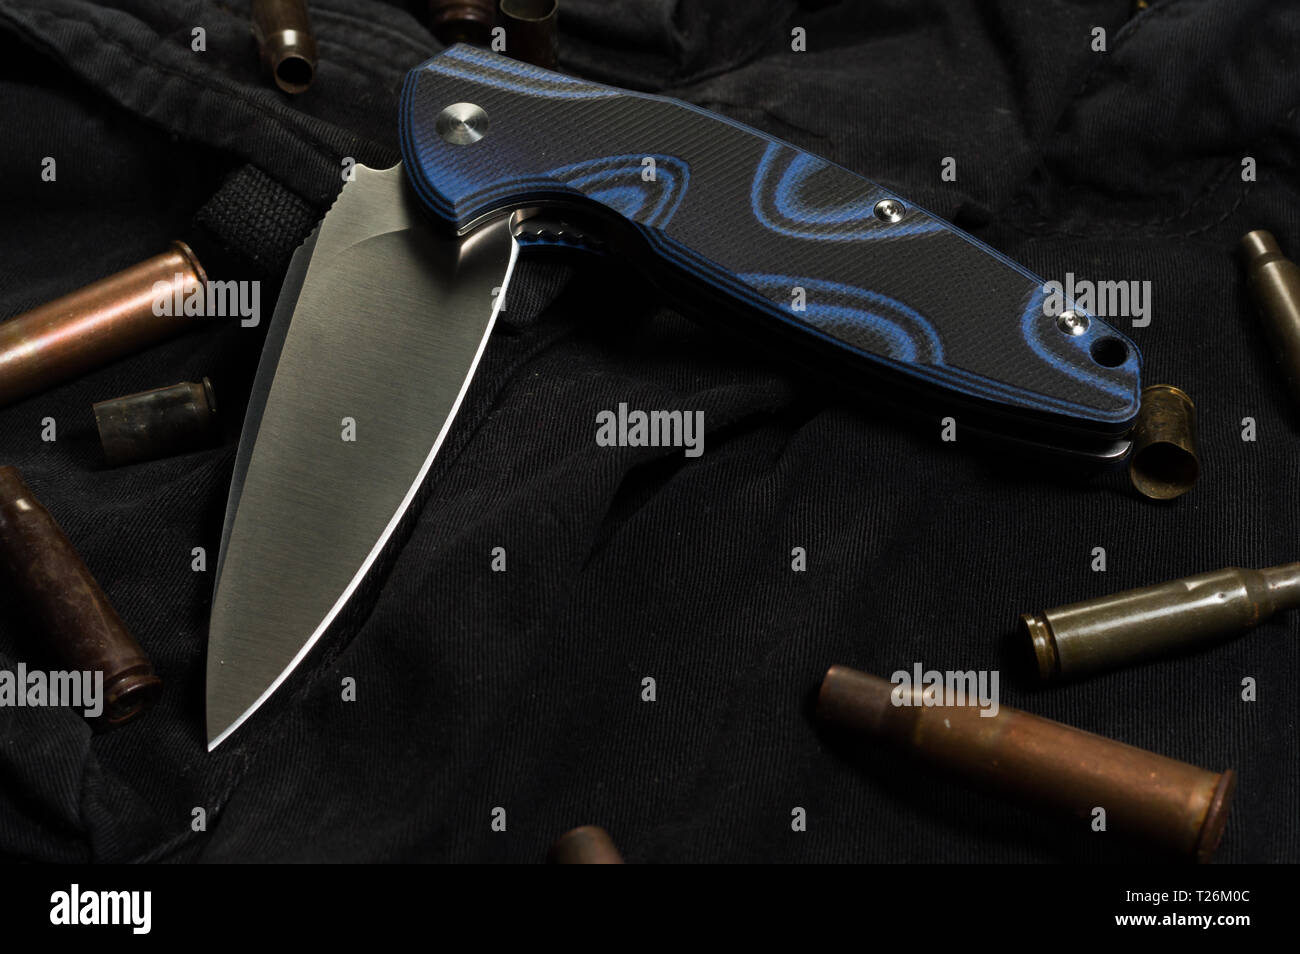 Folding knife. Knife in a half-complicated position. Front view. - Stock Image